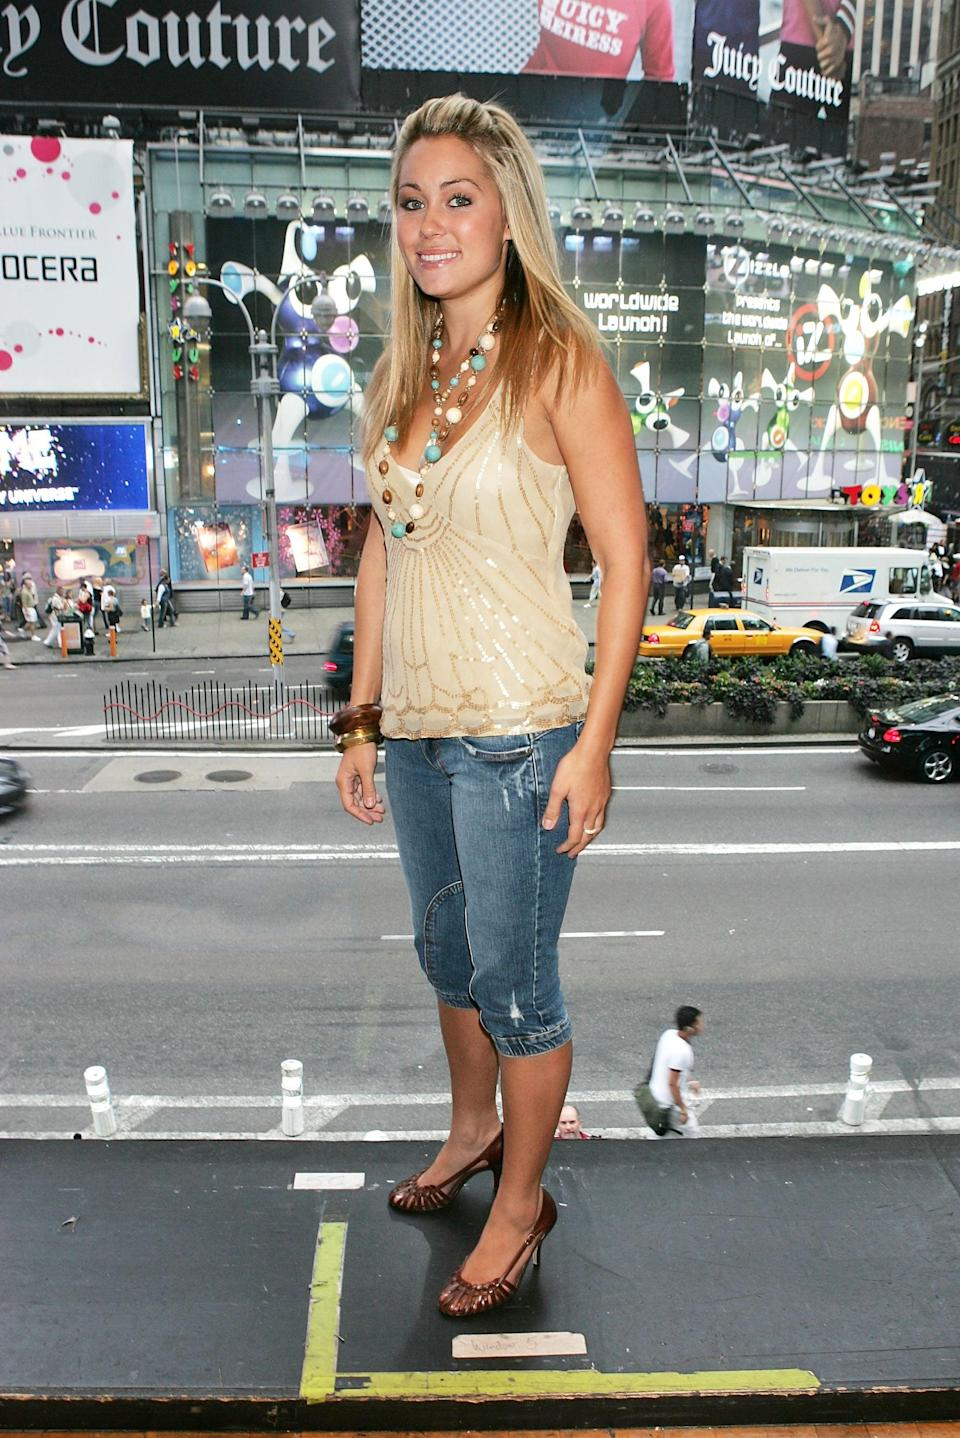 <p>Capris, open-toed heels, layered necklaces - pretty much this entire outfit.</p>